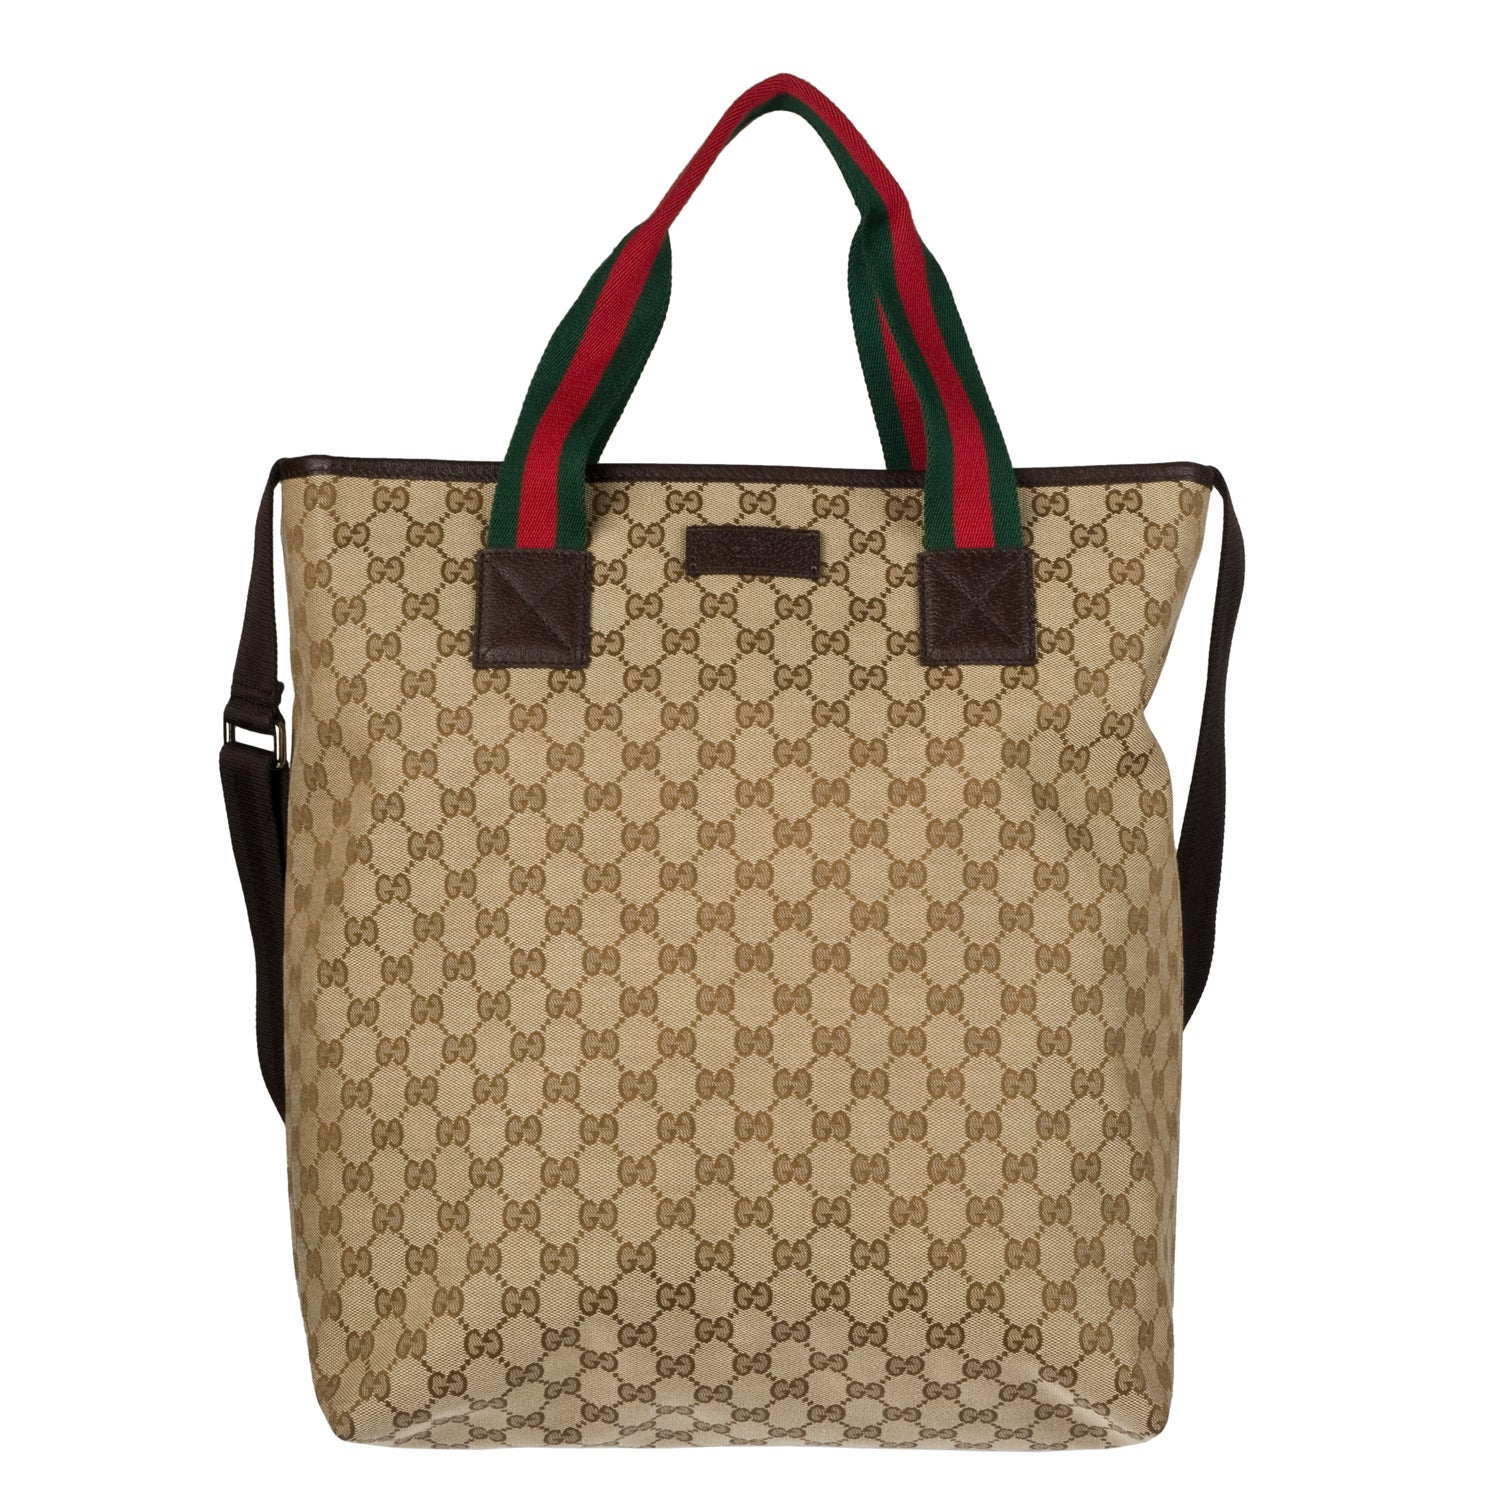 Gucci Web Detailed Canvas Tote Bag